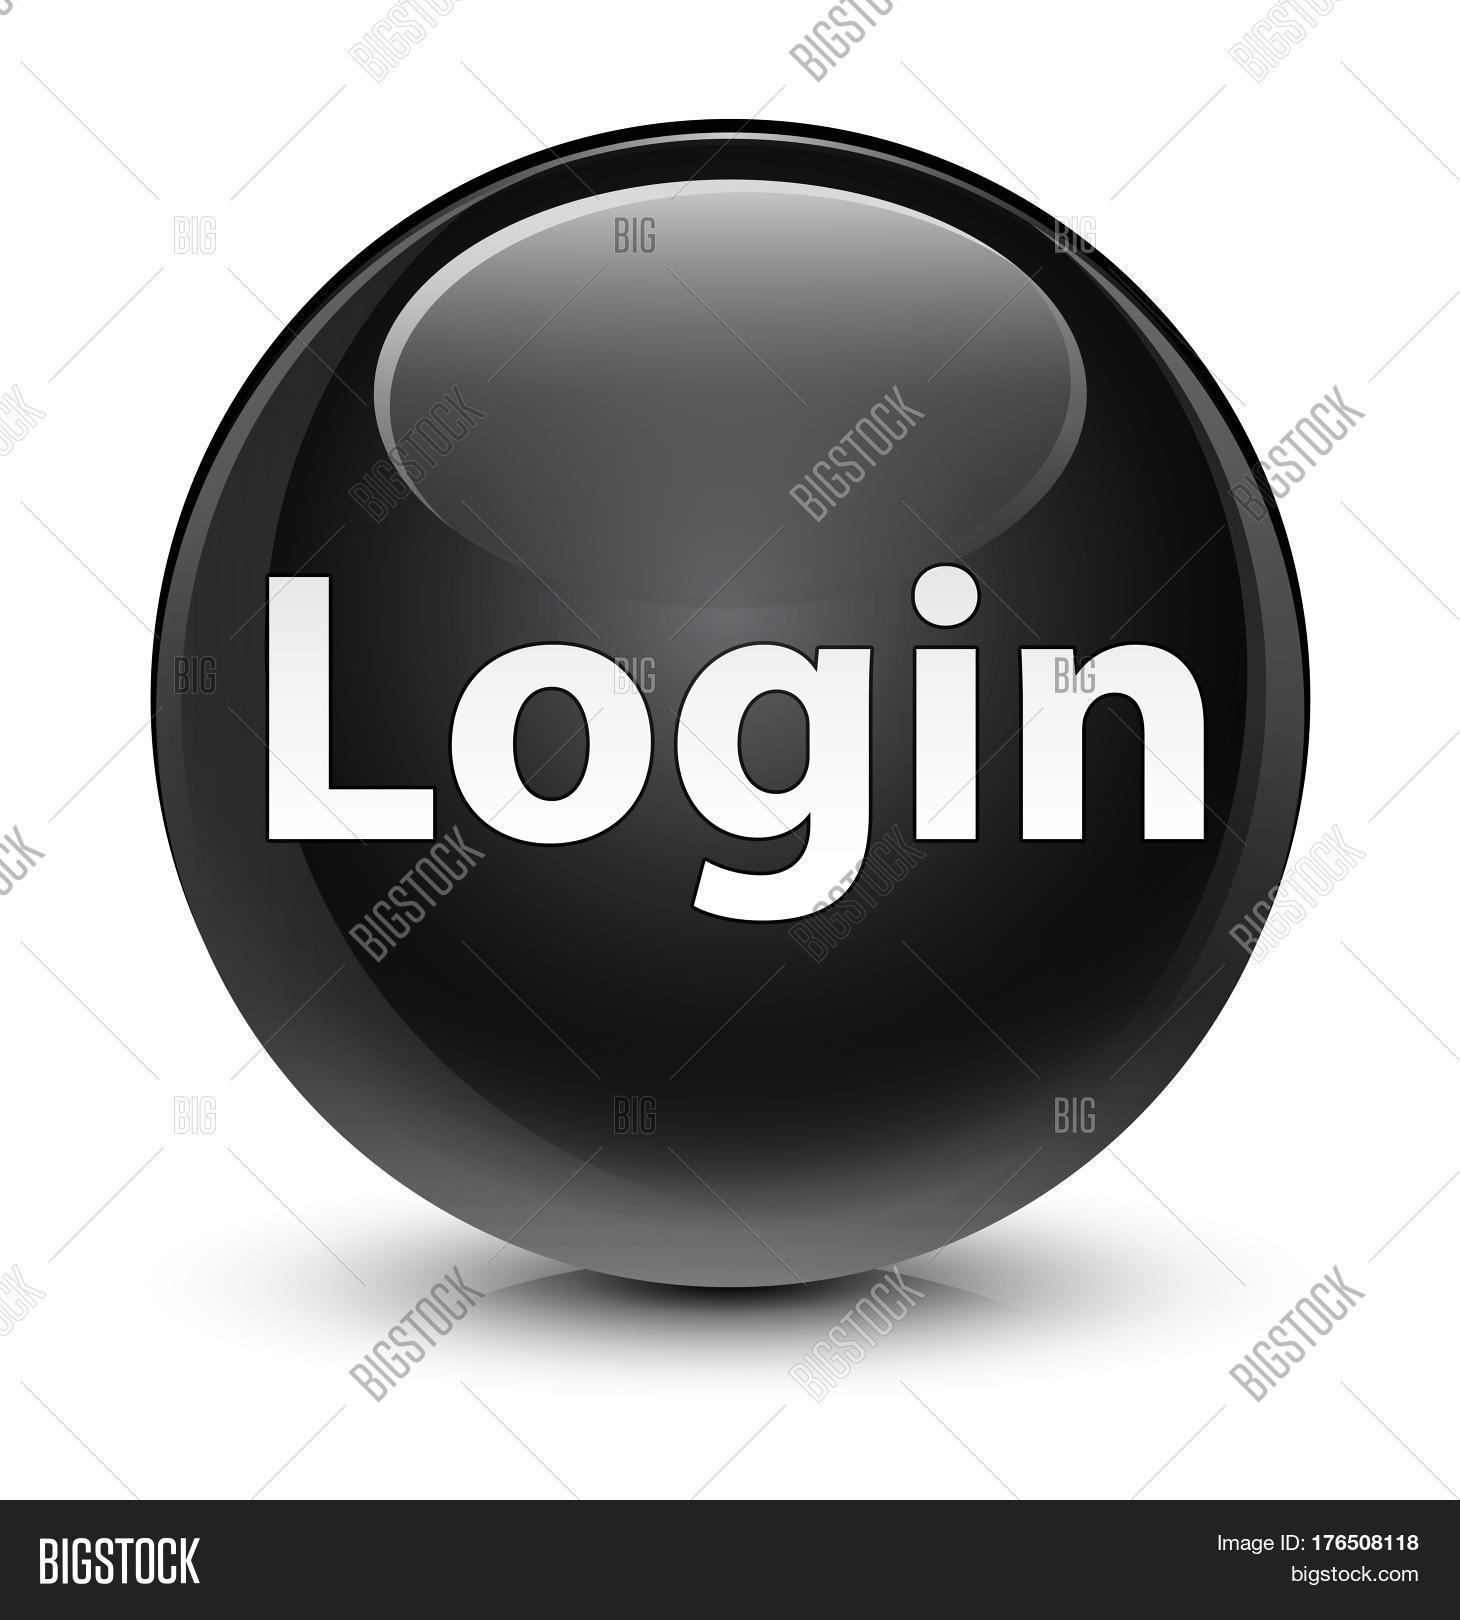 Login Glassy Black Round Button Image & Photo | Bigstock